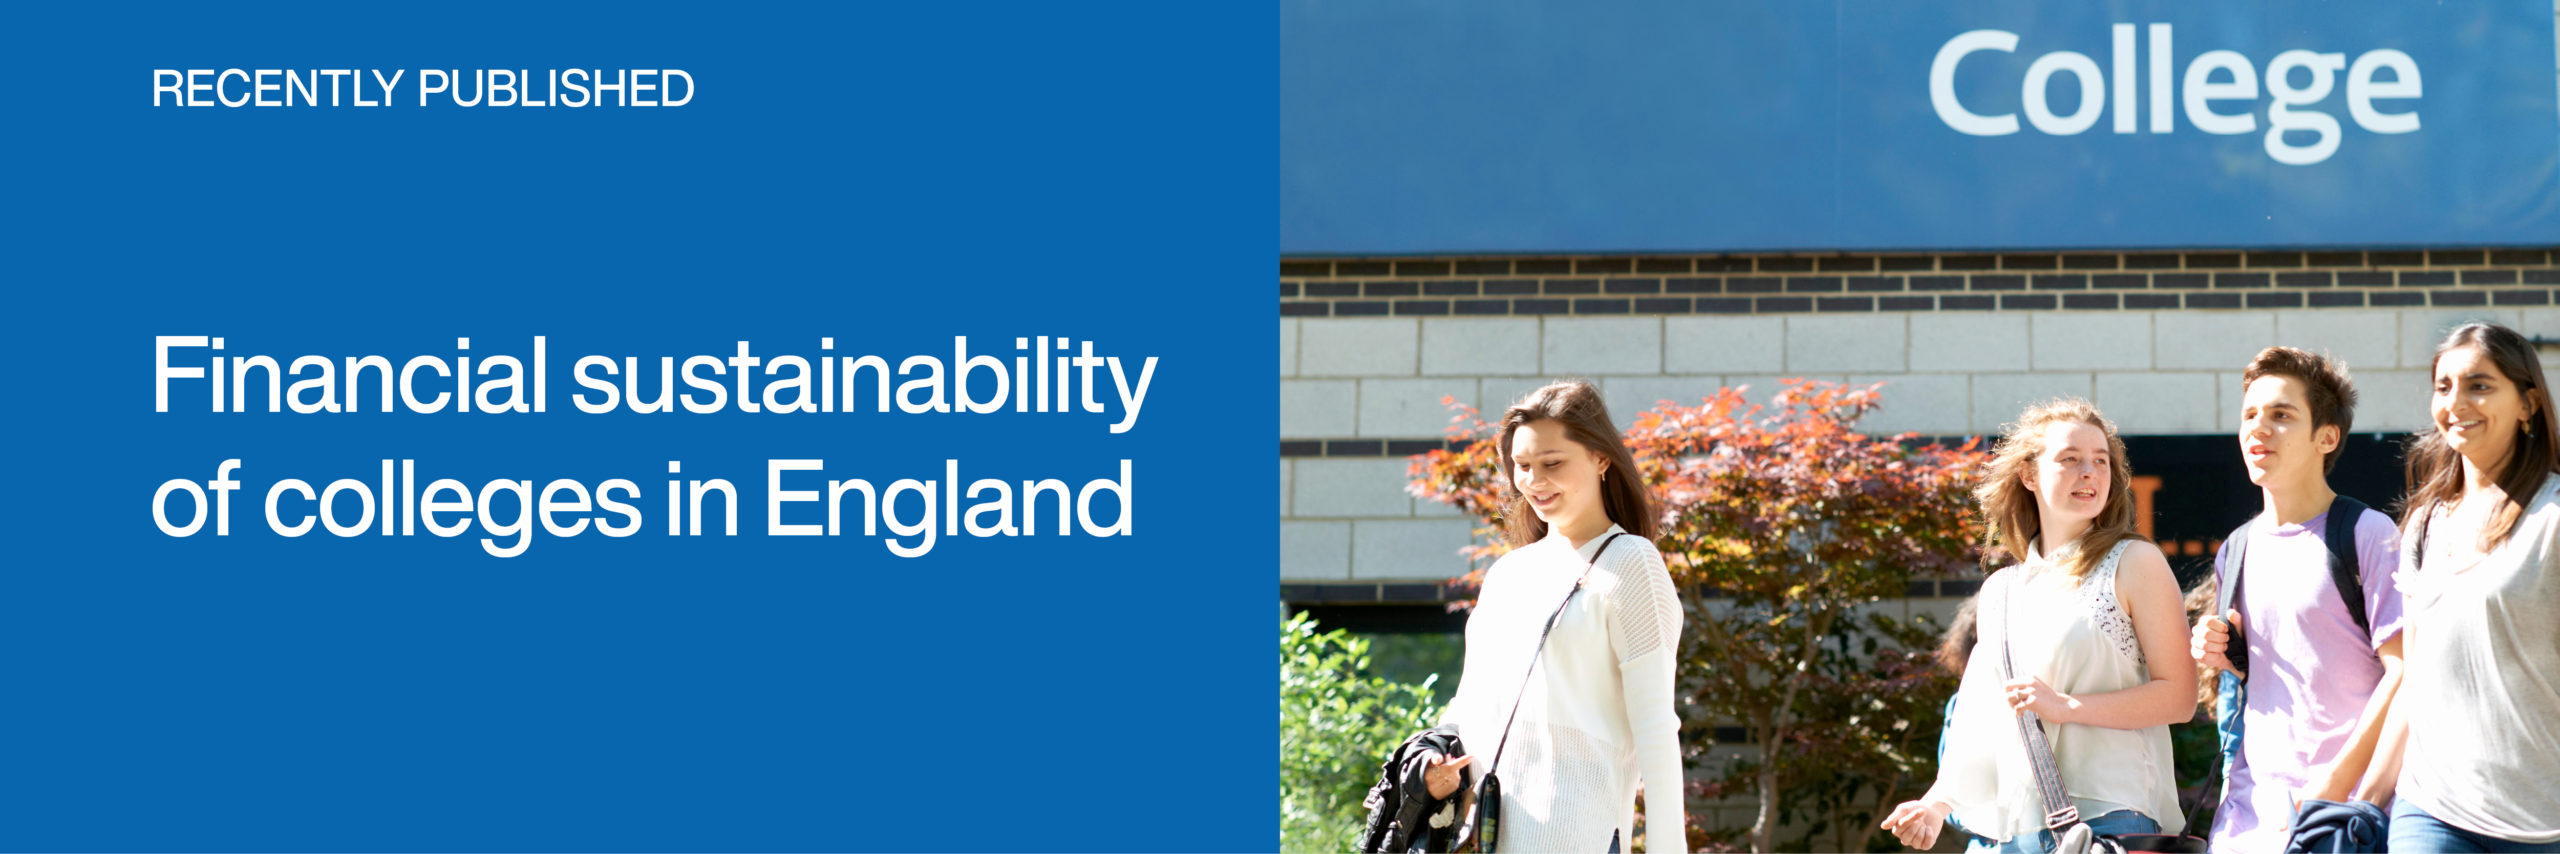 Link to the report Financial sustainability of colleges in England